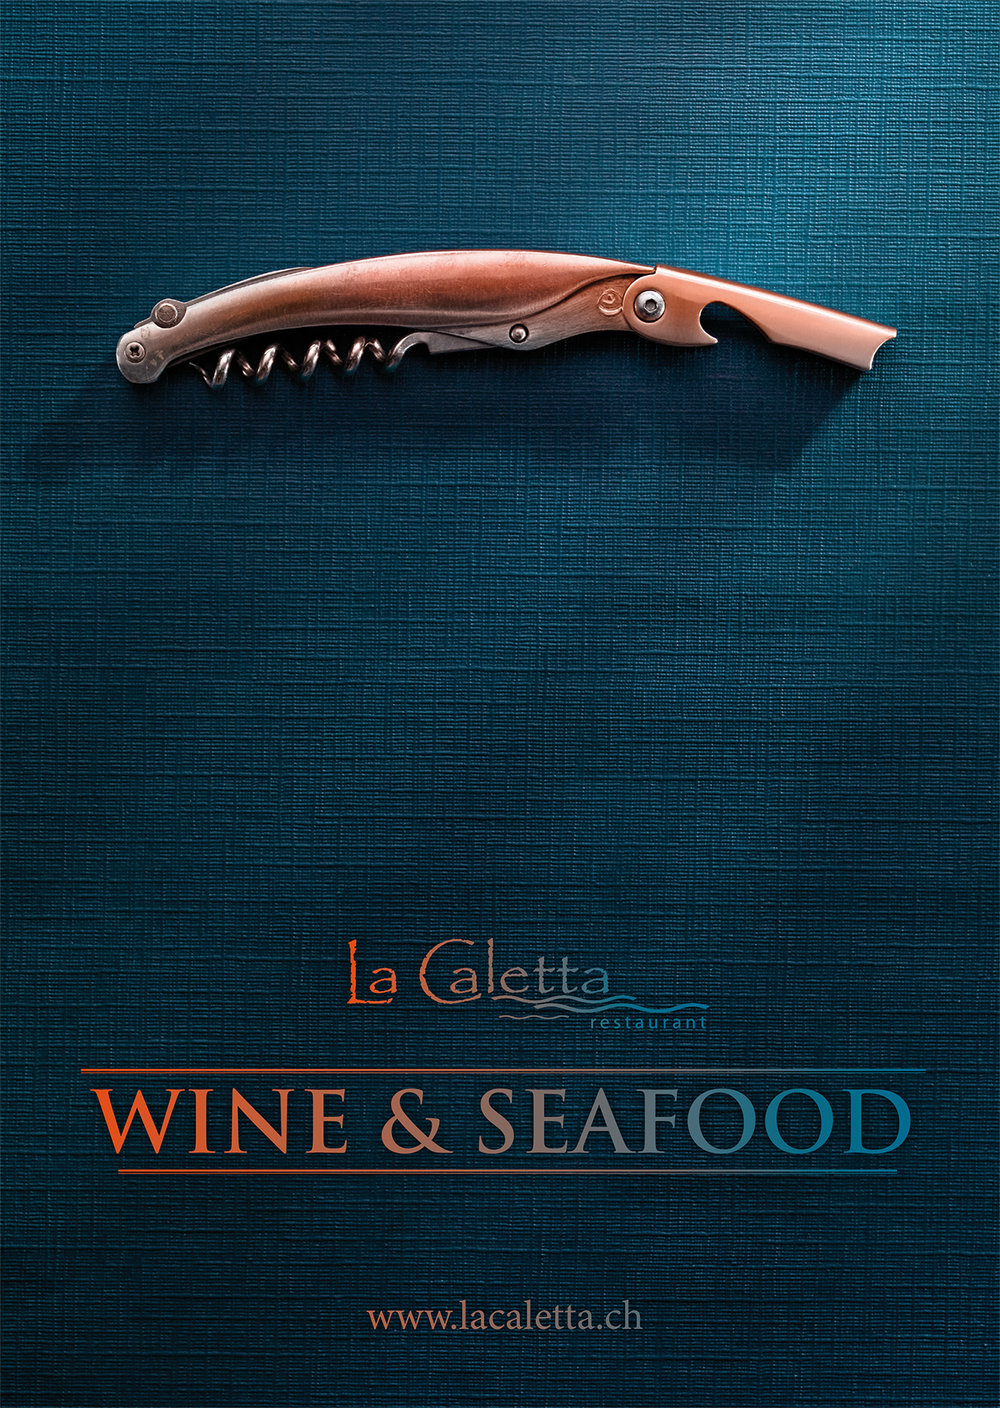 La Caletta Fischrestaurant. Keyvisual, Corporate und Kommunikation